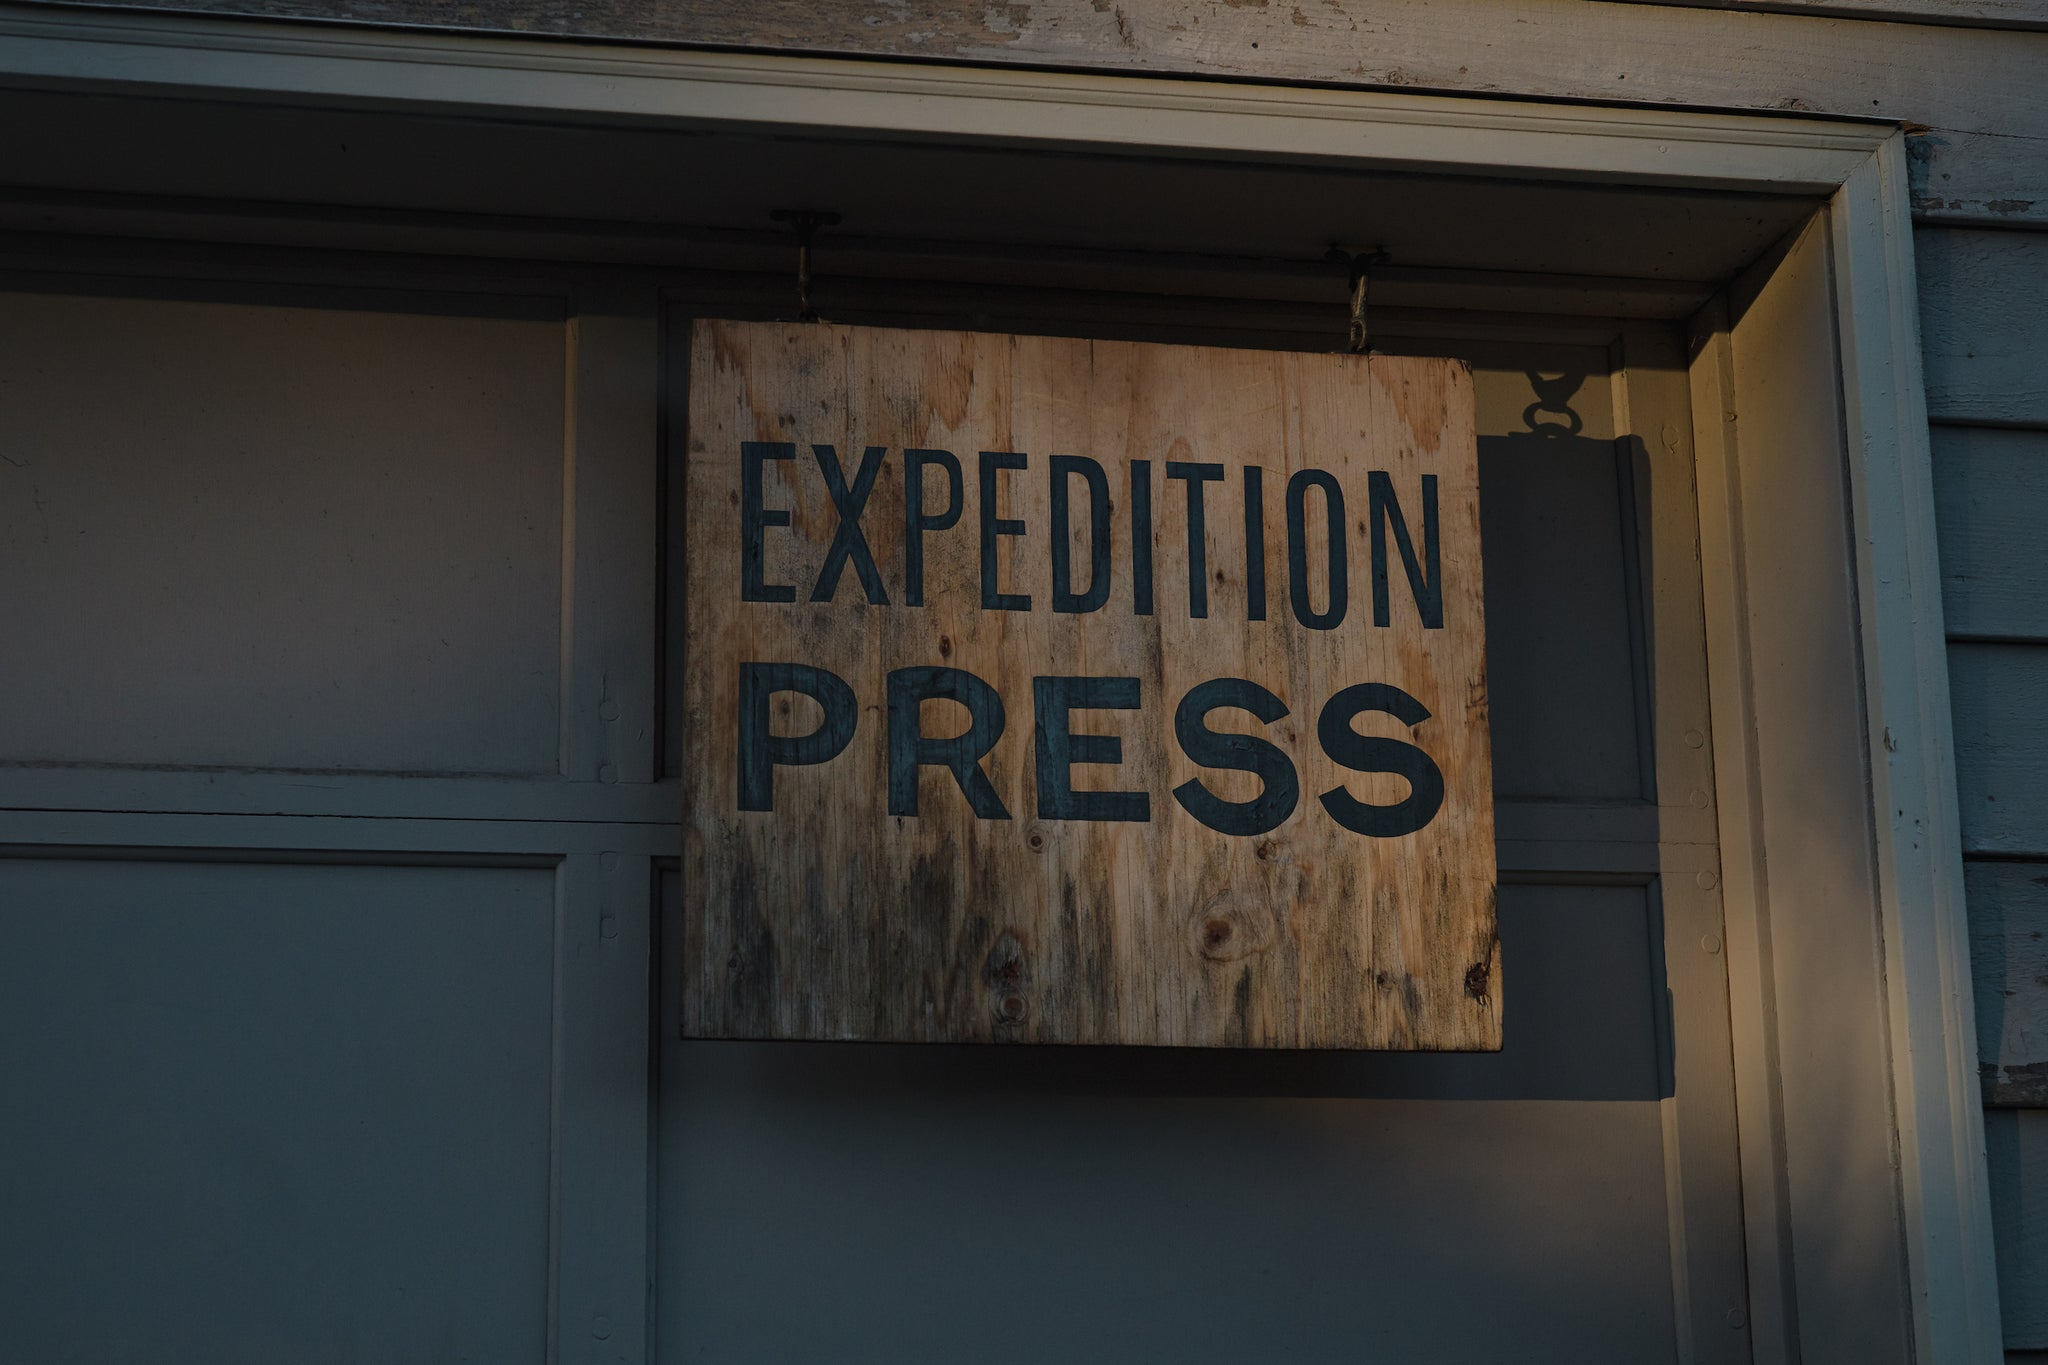 Expedition Press shop sign